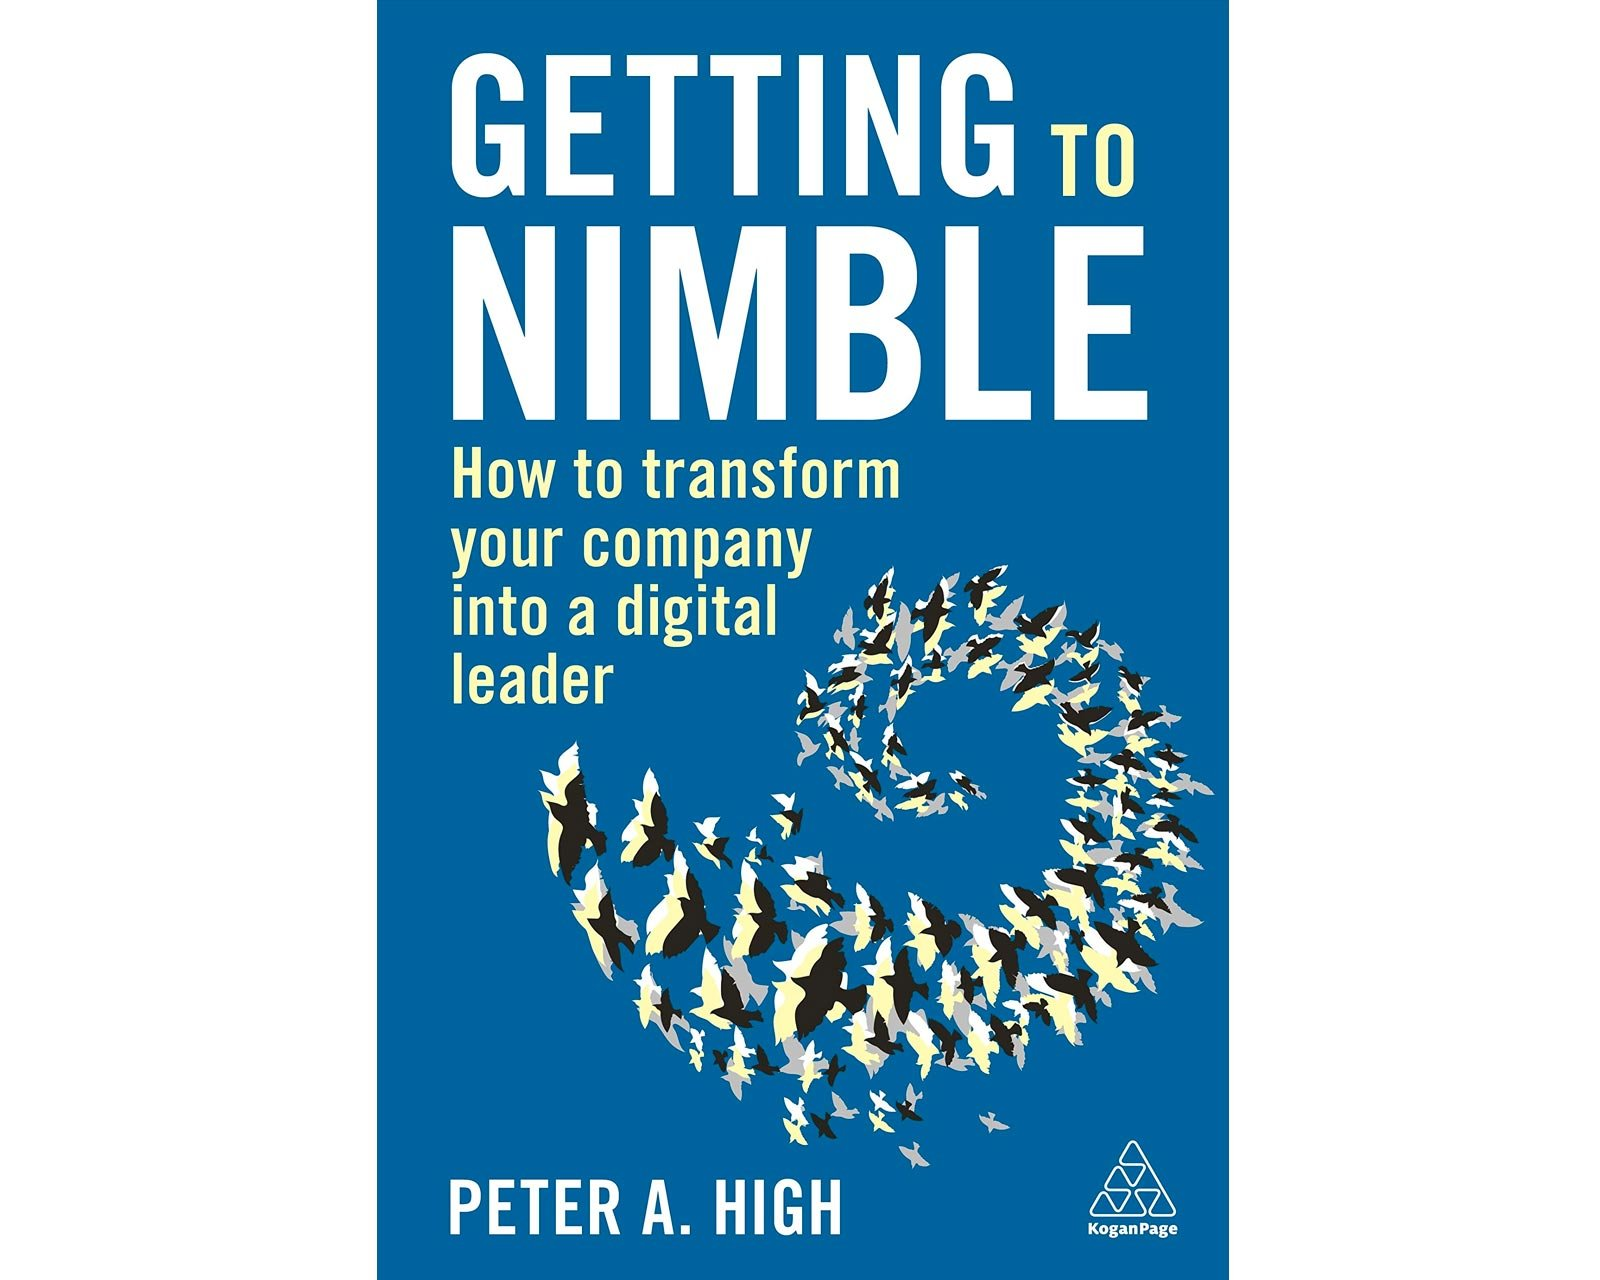 Getting Nimble